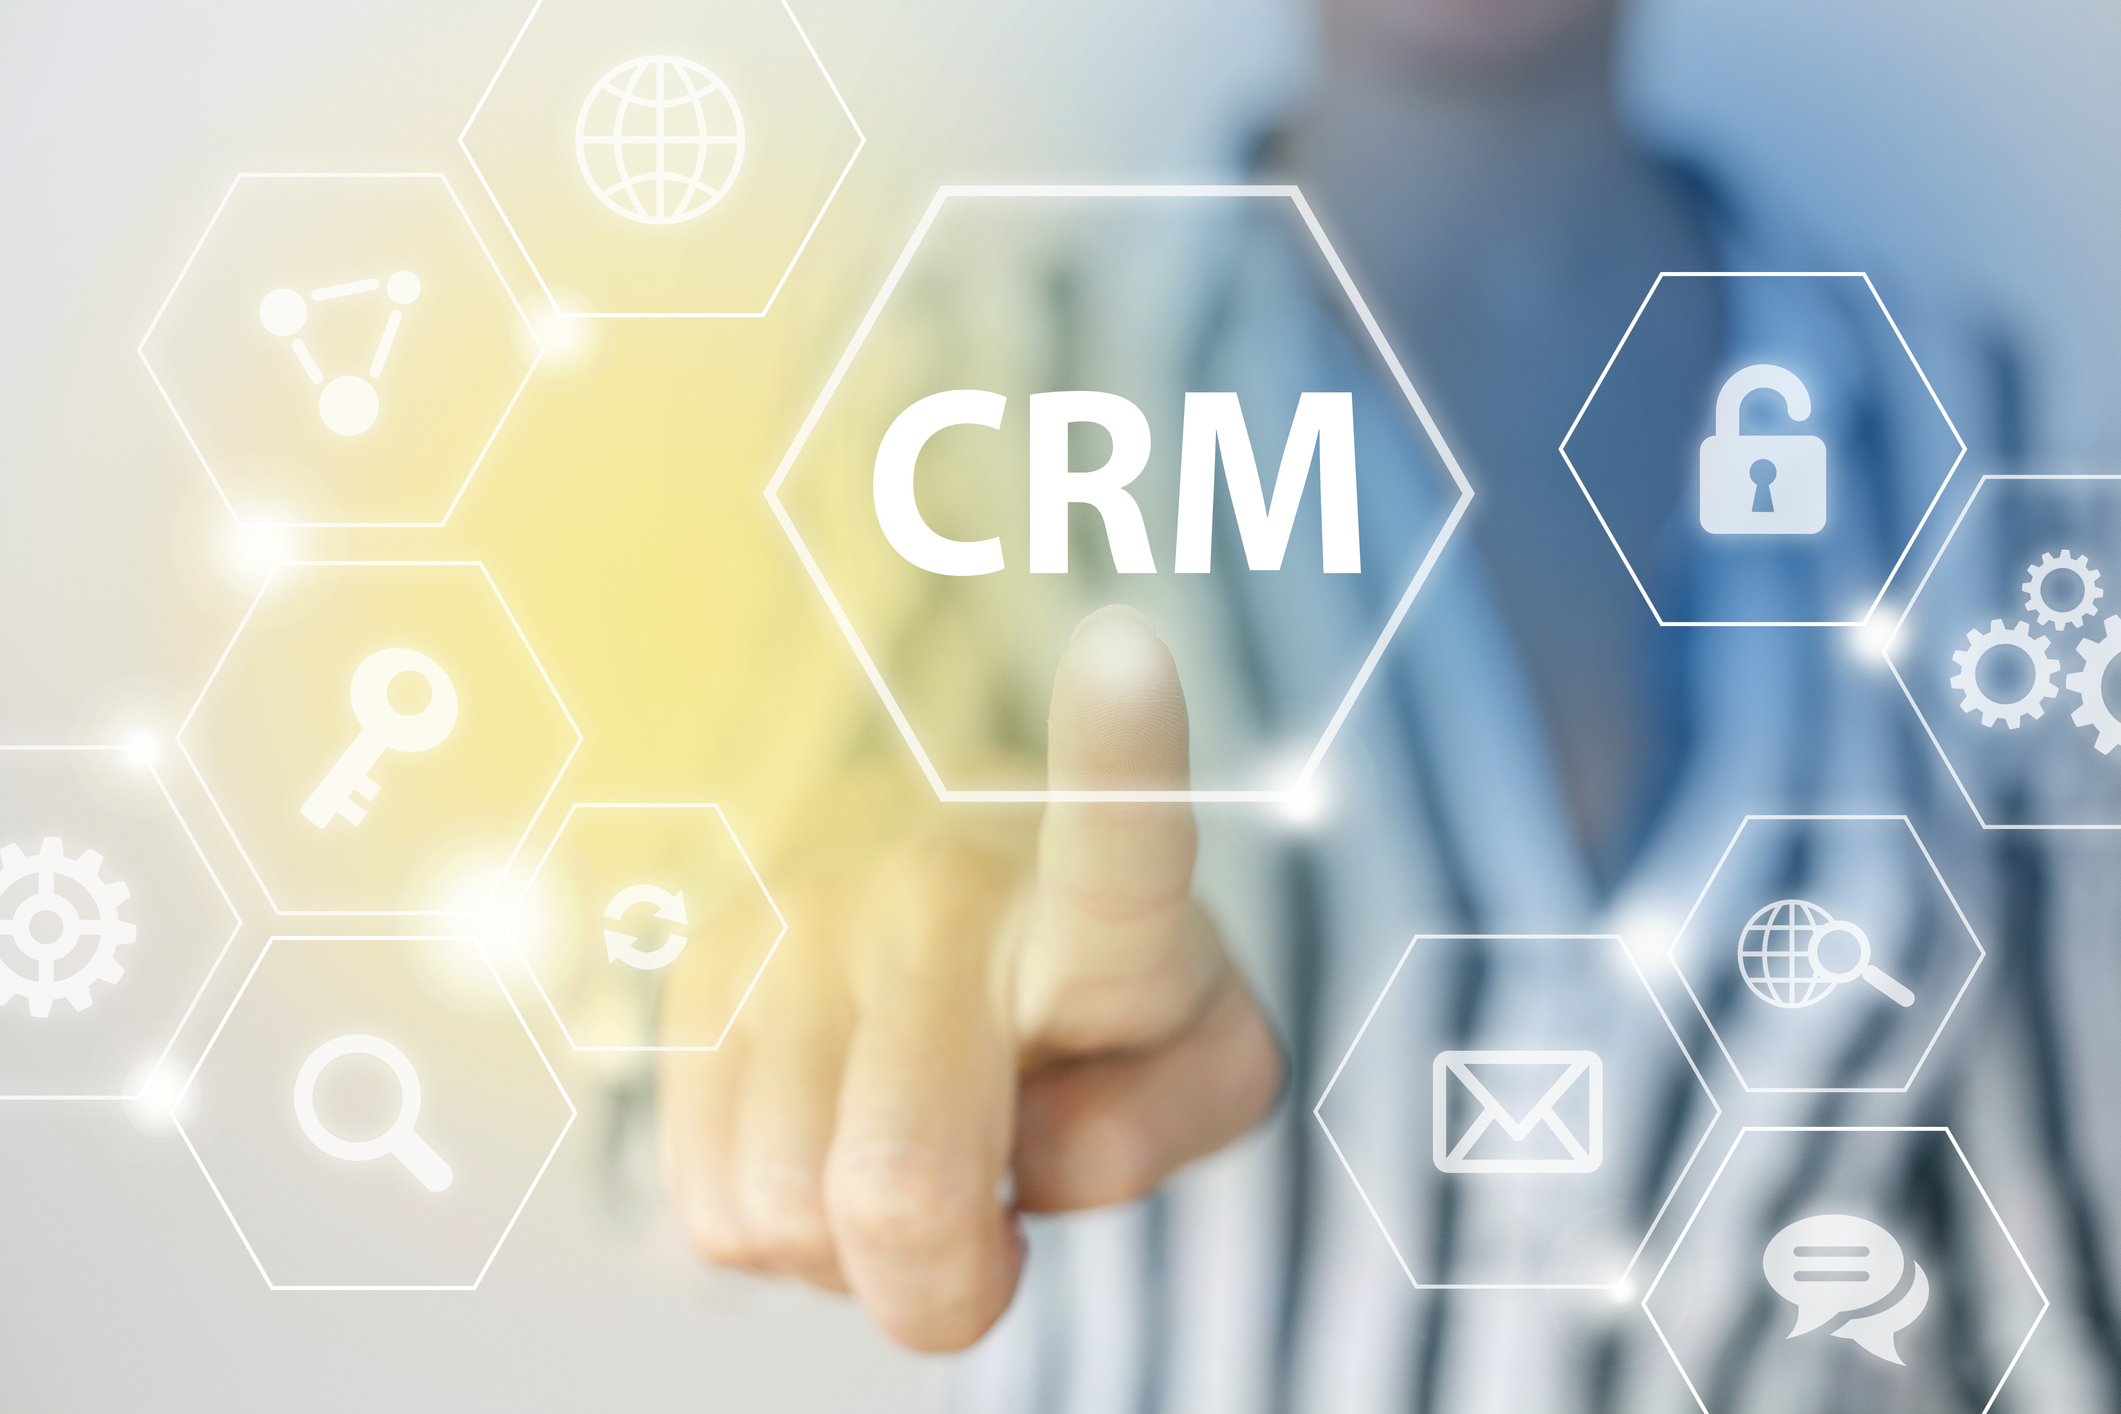 3 Reasons To Go With a Custom CRM Software Solution